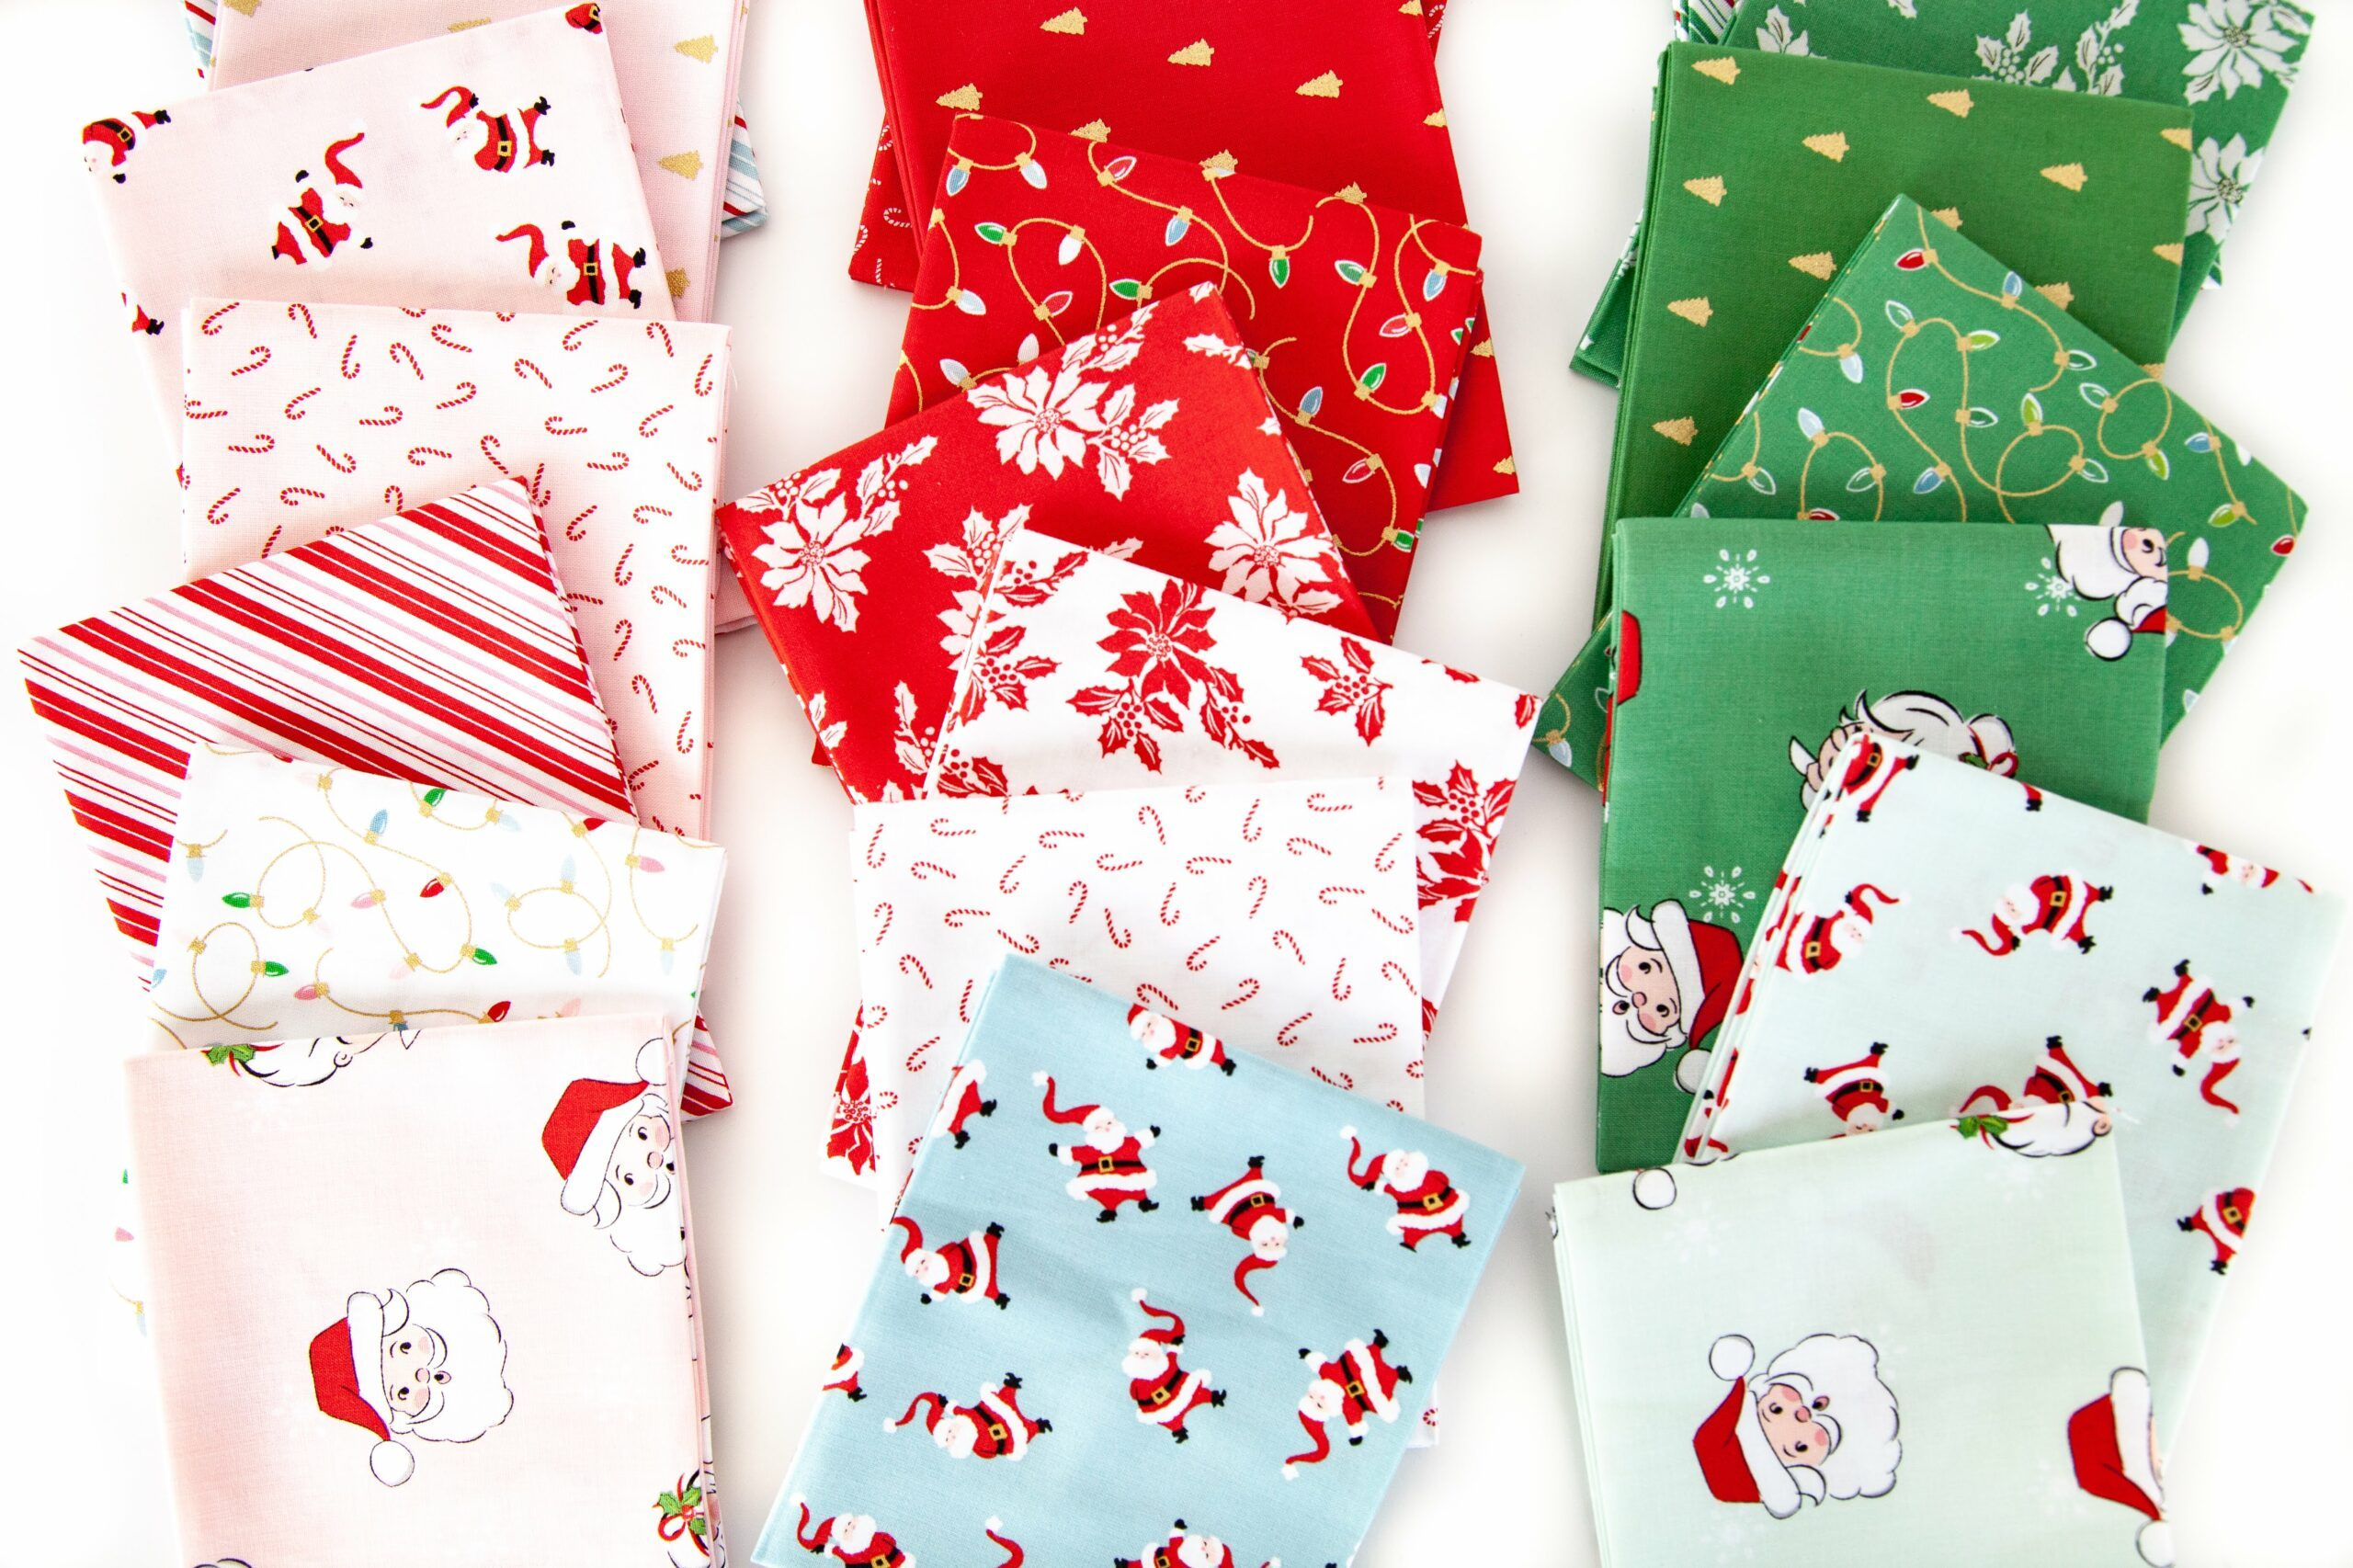 Introducing the Santa Claus Lane Fabric Collection